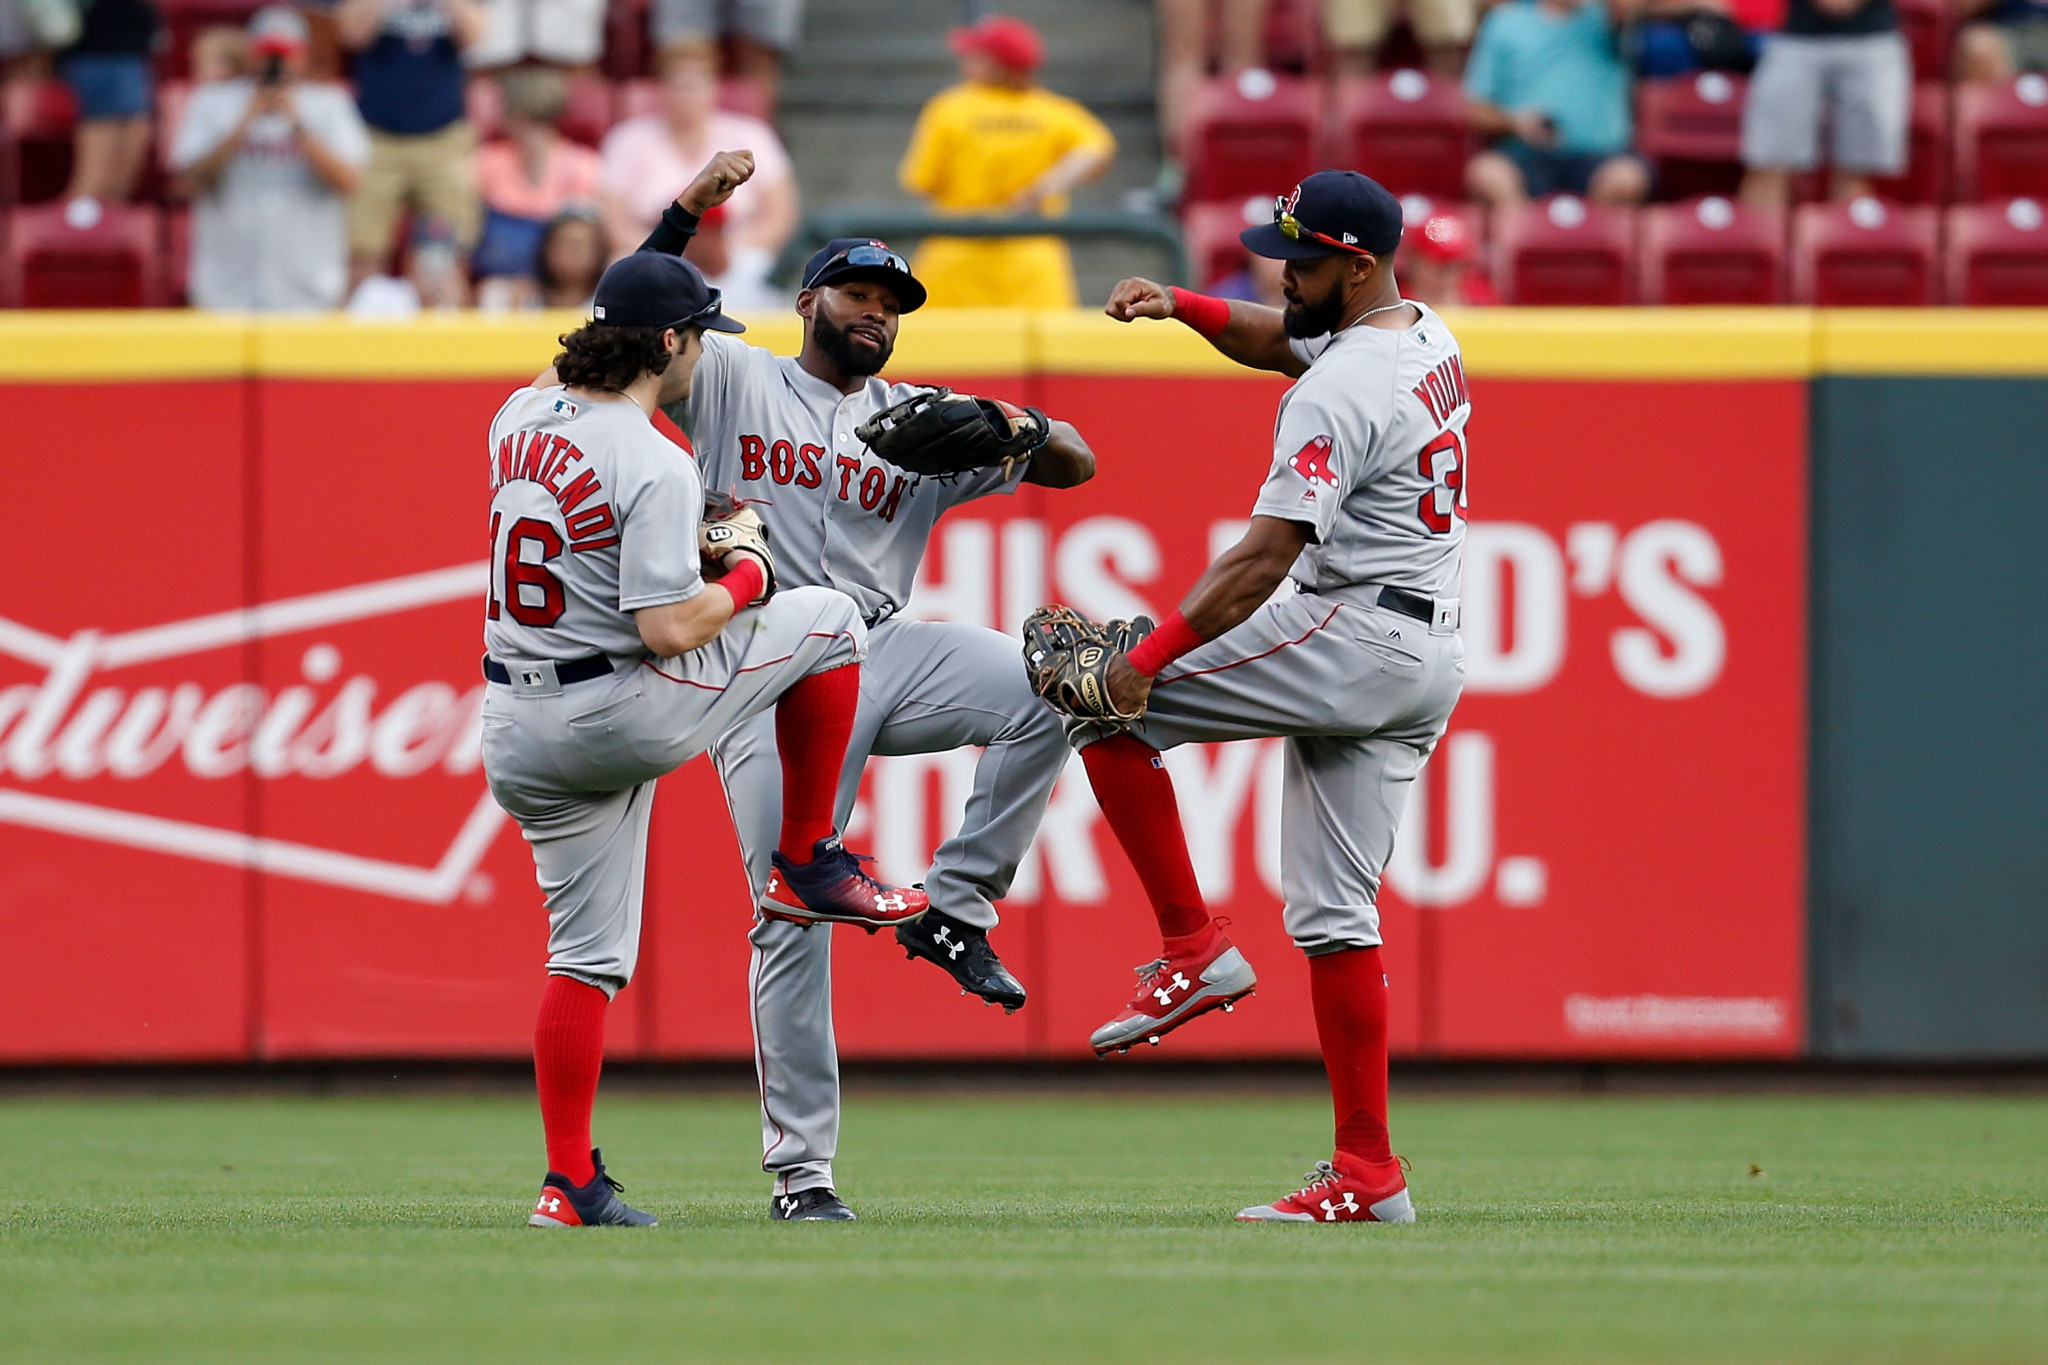 The Boston Red Sox are one of the most famous teams in the MLB ©Getty Images